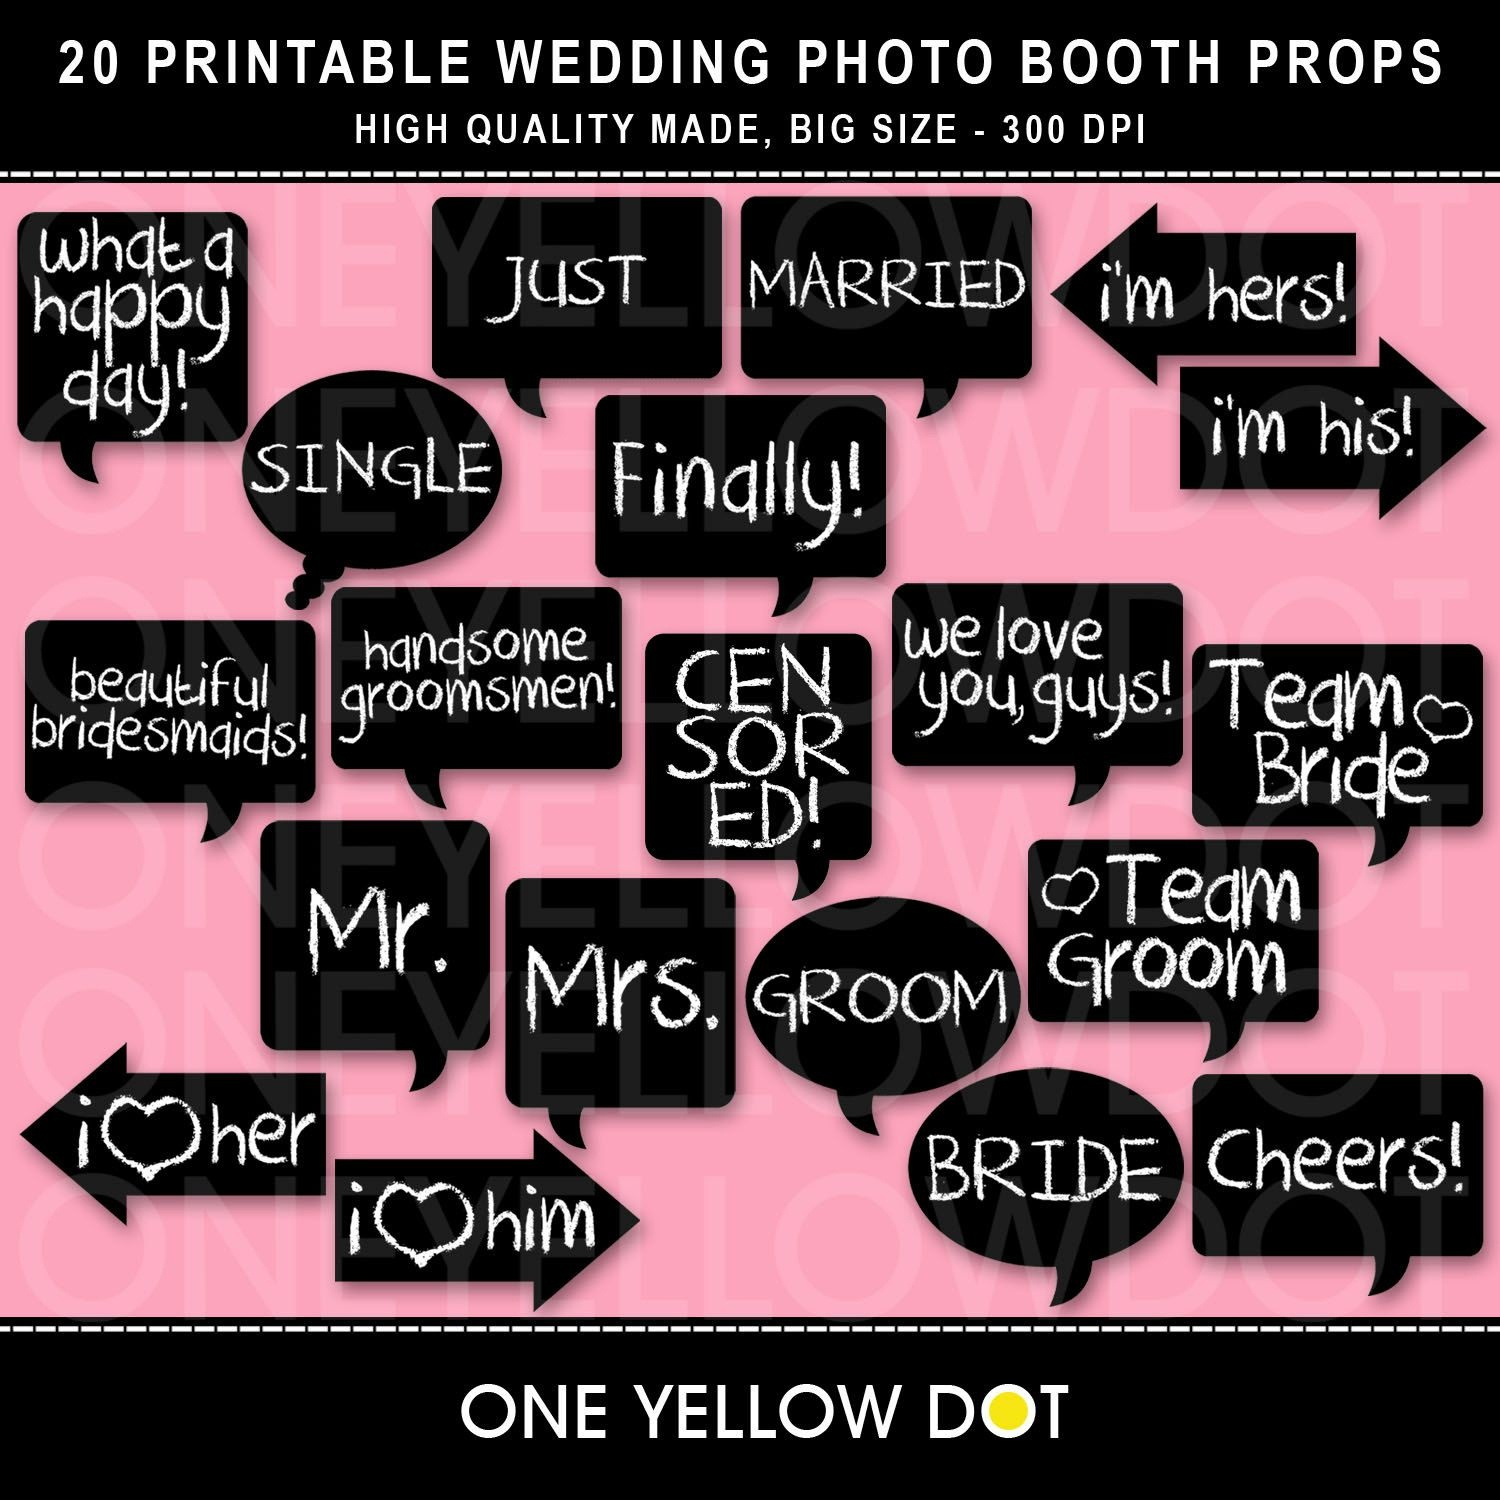 Instant Download - Wedding Photo Booth Props Printable - Pdf - Free Printable Wedding Photo Booth Props